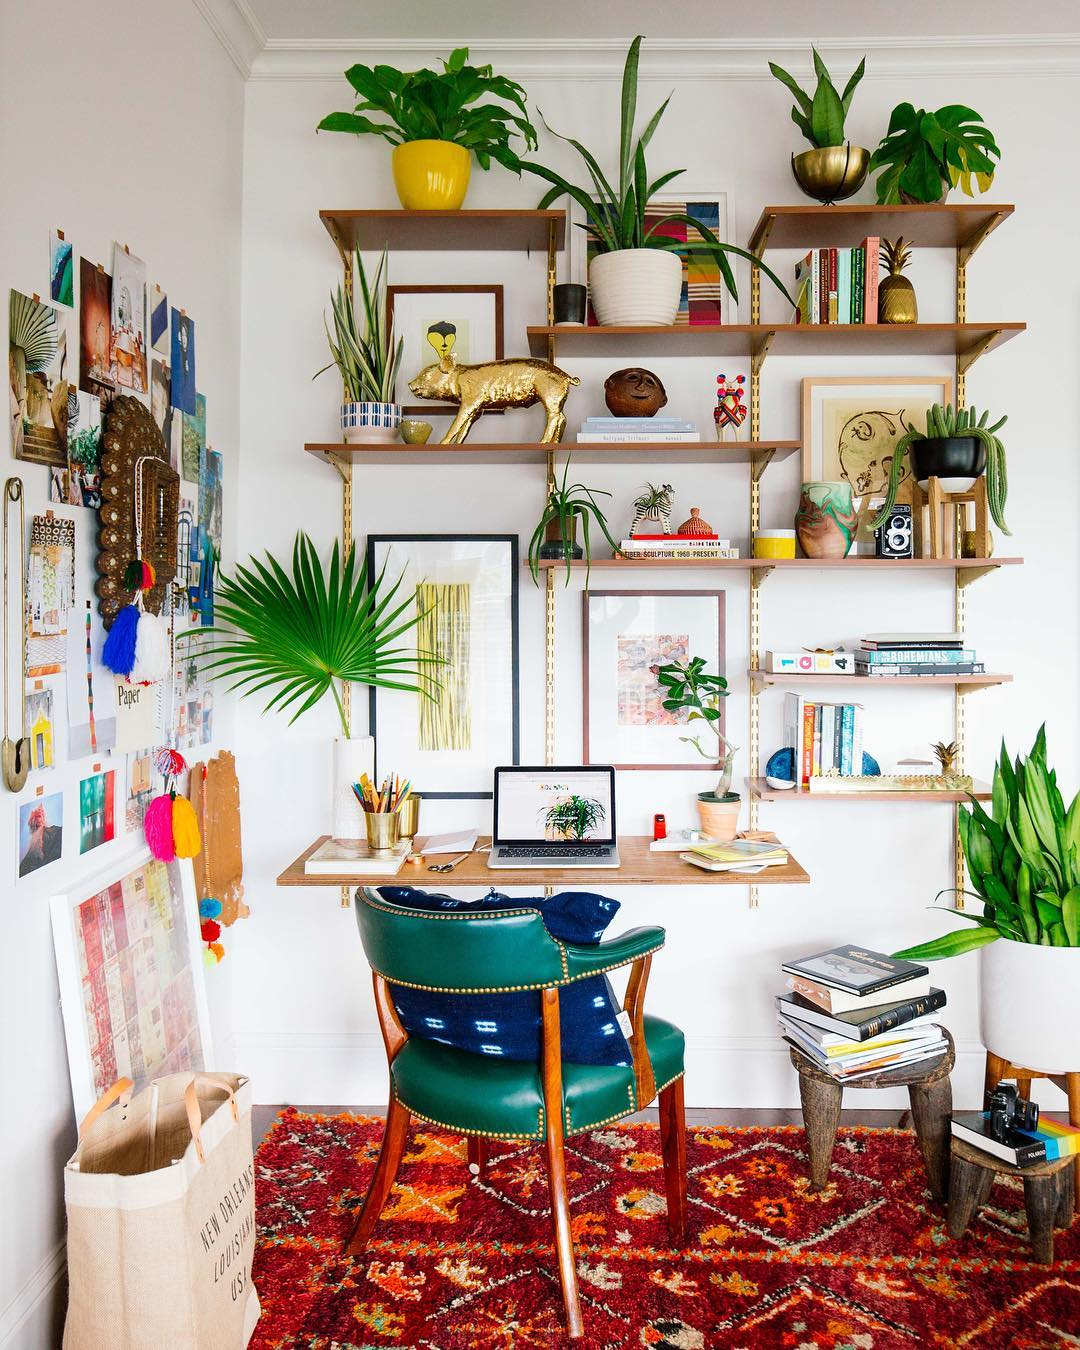 The Ideas Your Home Office Has Been Asking For 2 home office The Ideas Your Home Office Has Been Asking For The Ideas Your Home Office Has Been Asking For 2